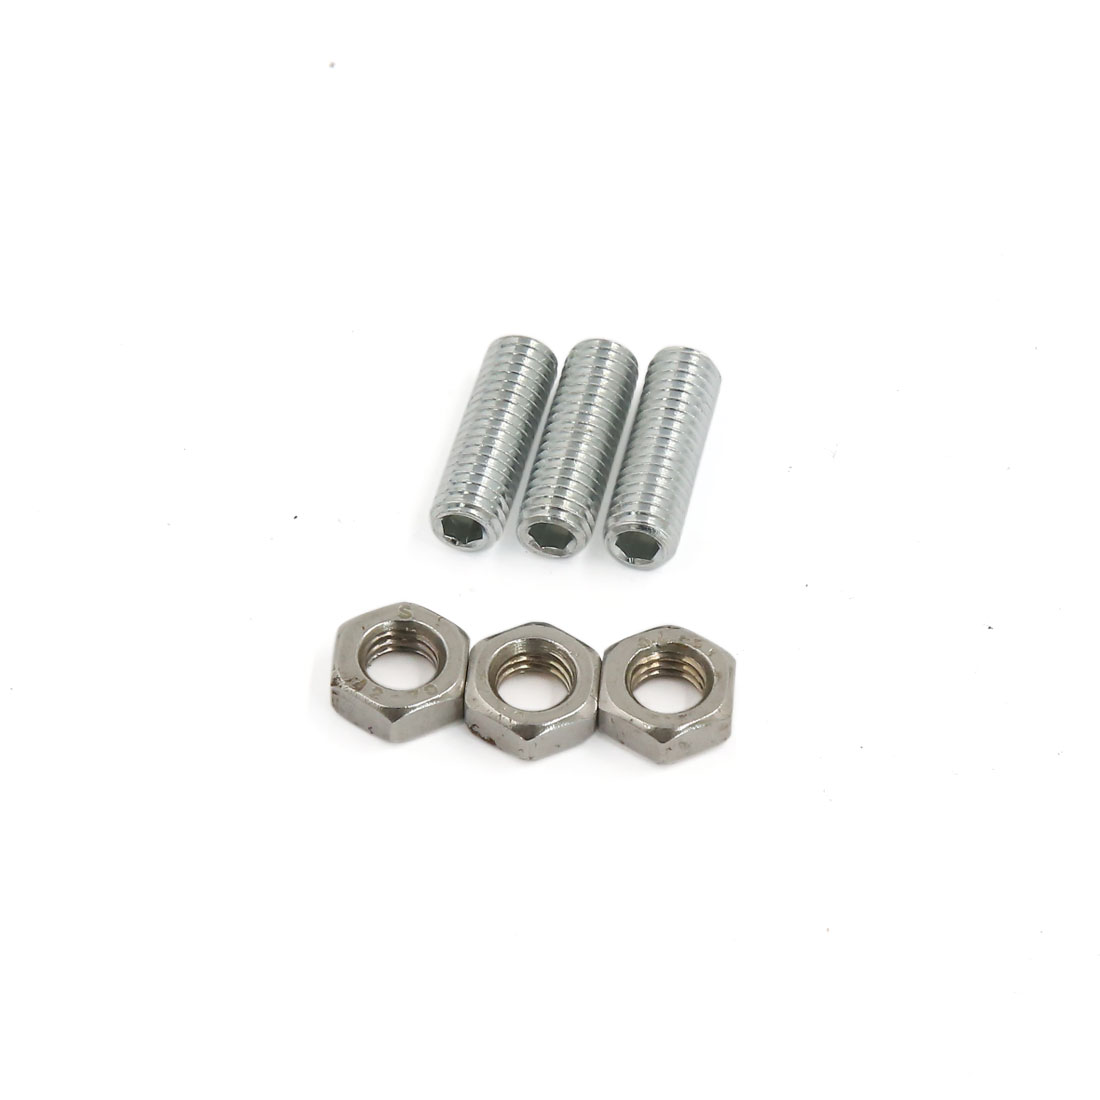 Stainless Steel Exhaust Muffler Tip Modified Silencer Tail Fit Car Vehicle - image 1 de 4